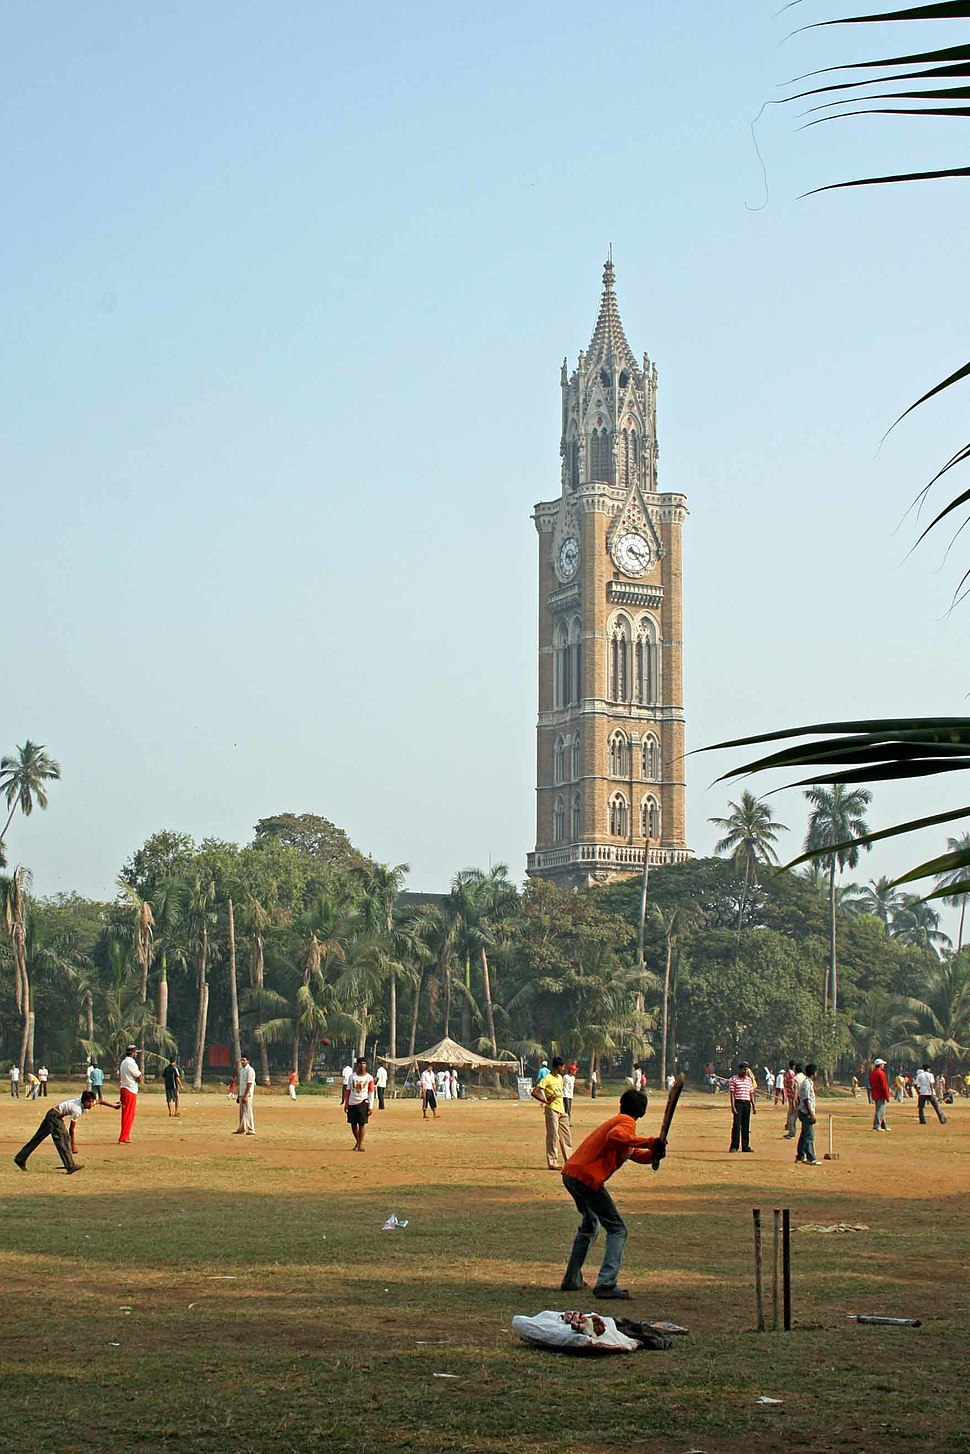 A Game of Cricket in Mumbai (2133149871)